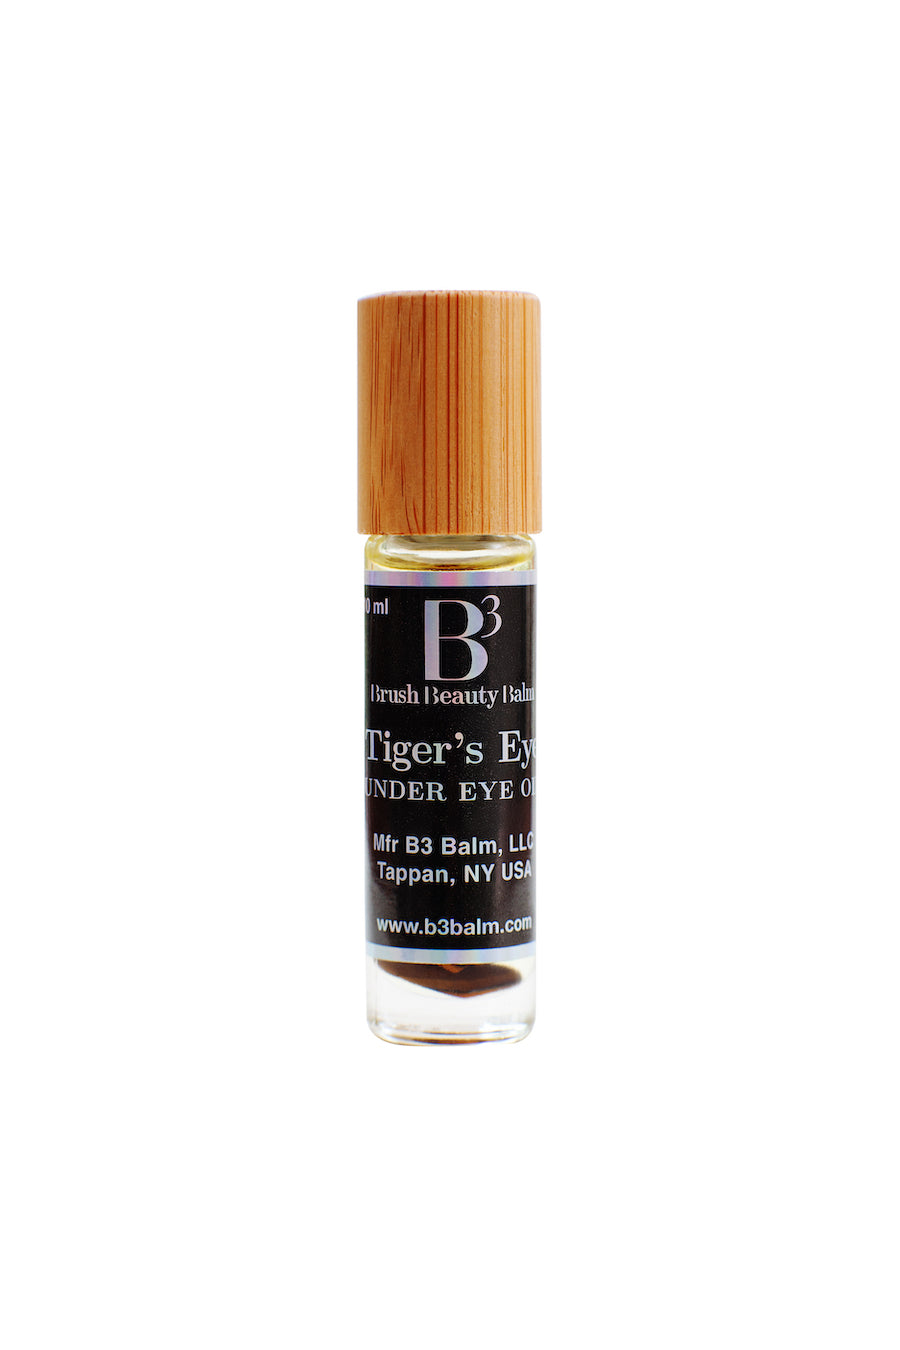 Tigers Eye Under Eye Oil - B3 Balm